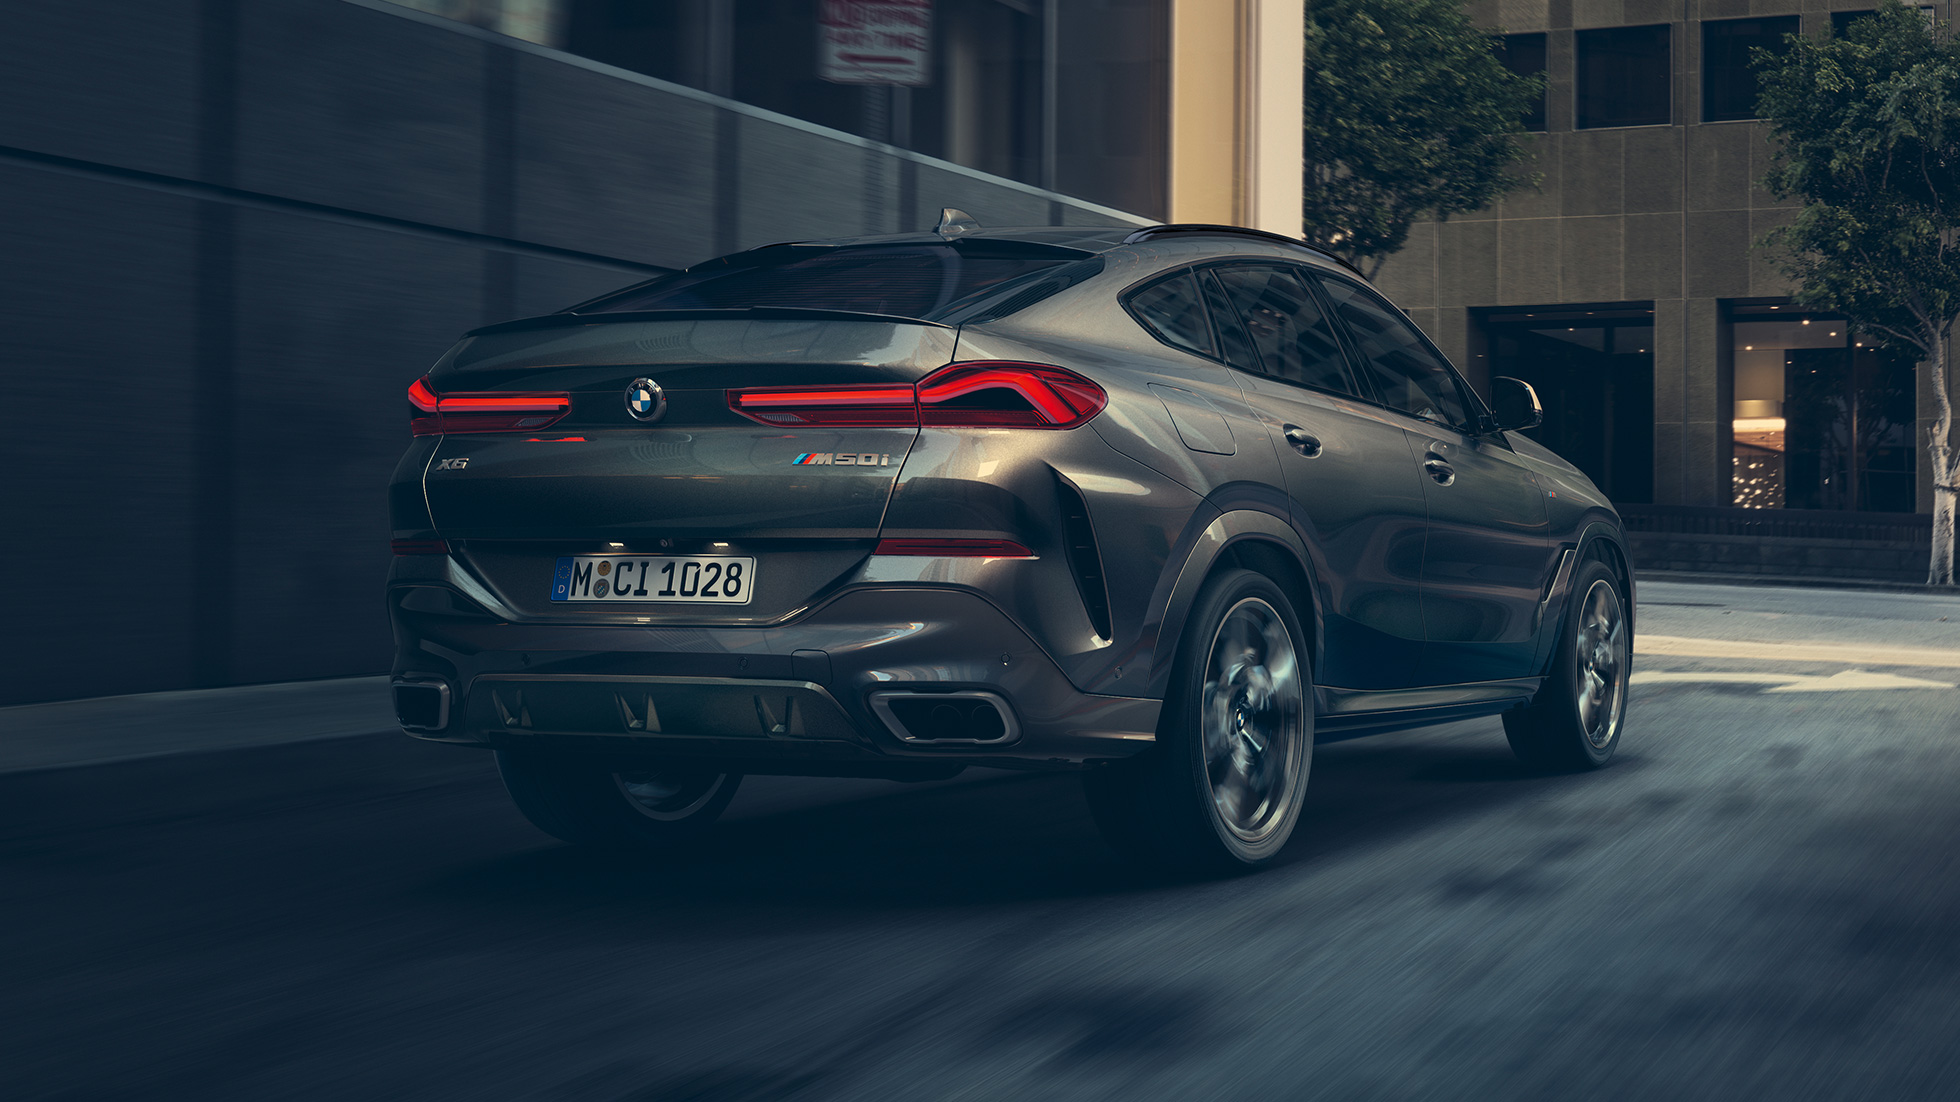 Threequarter rear view of the BMW X6.